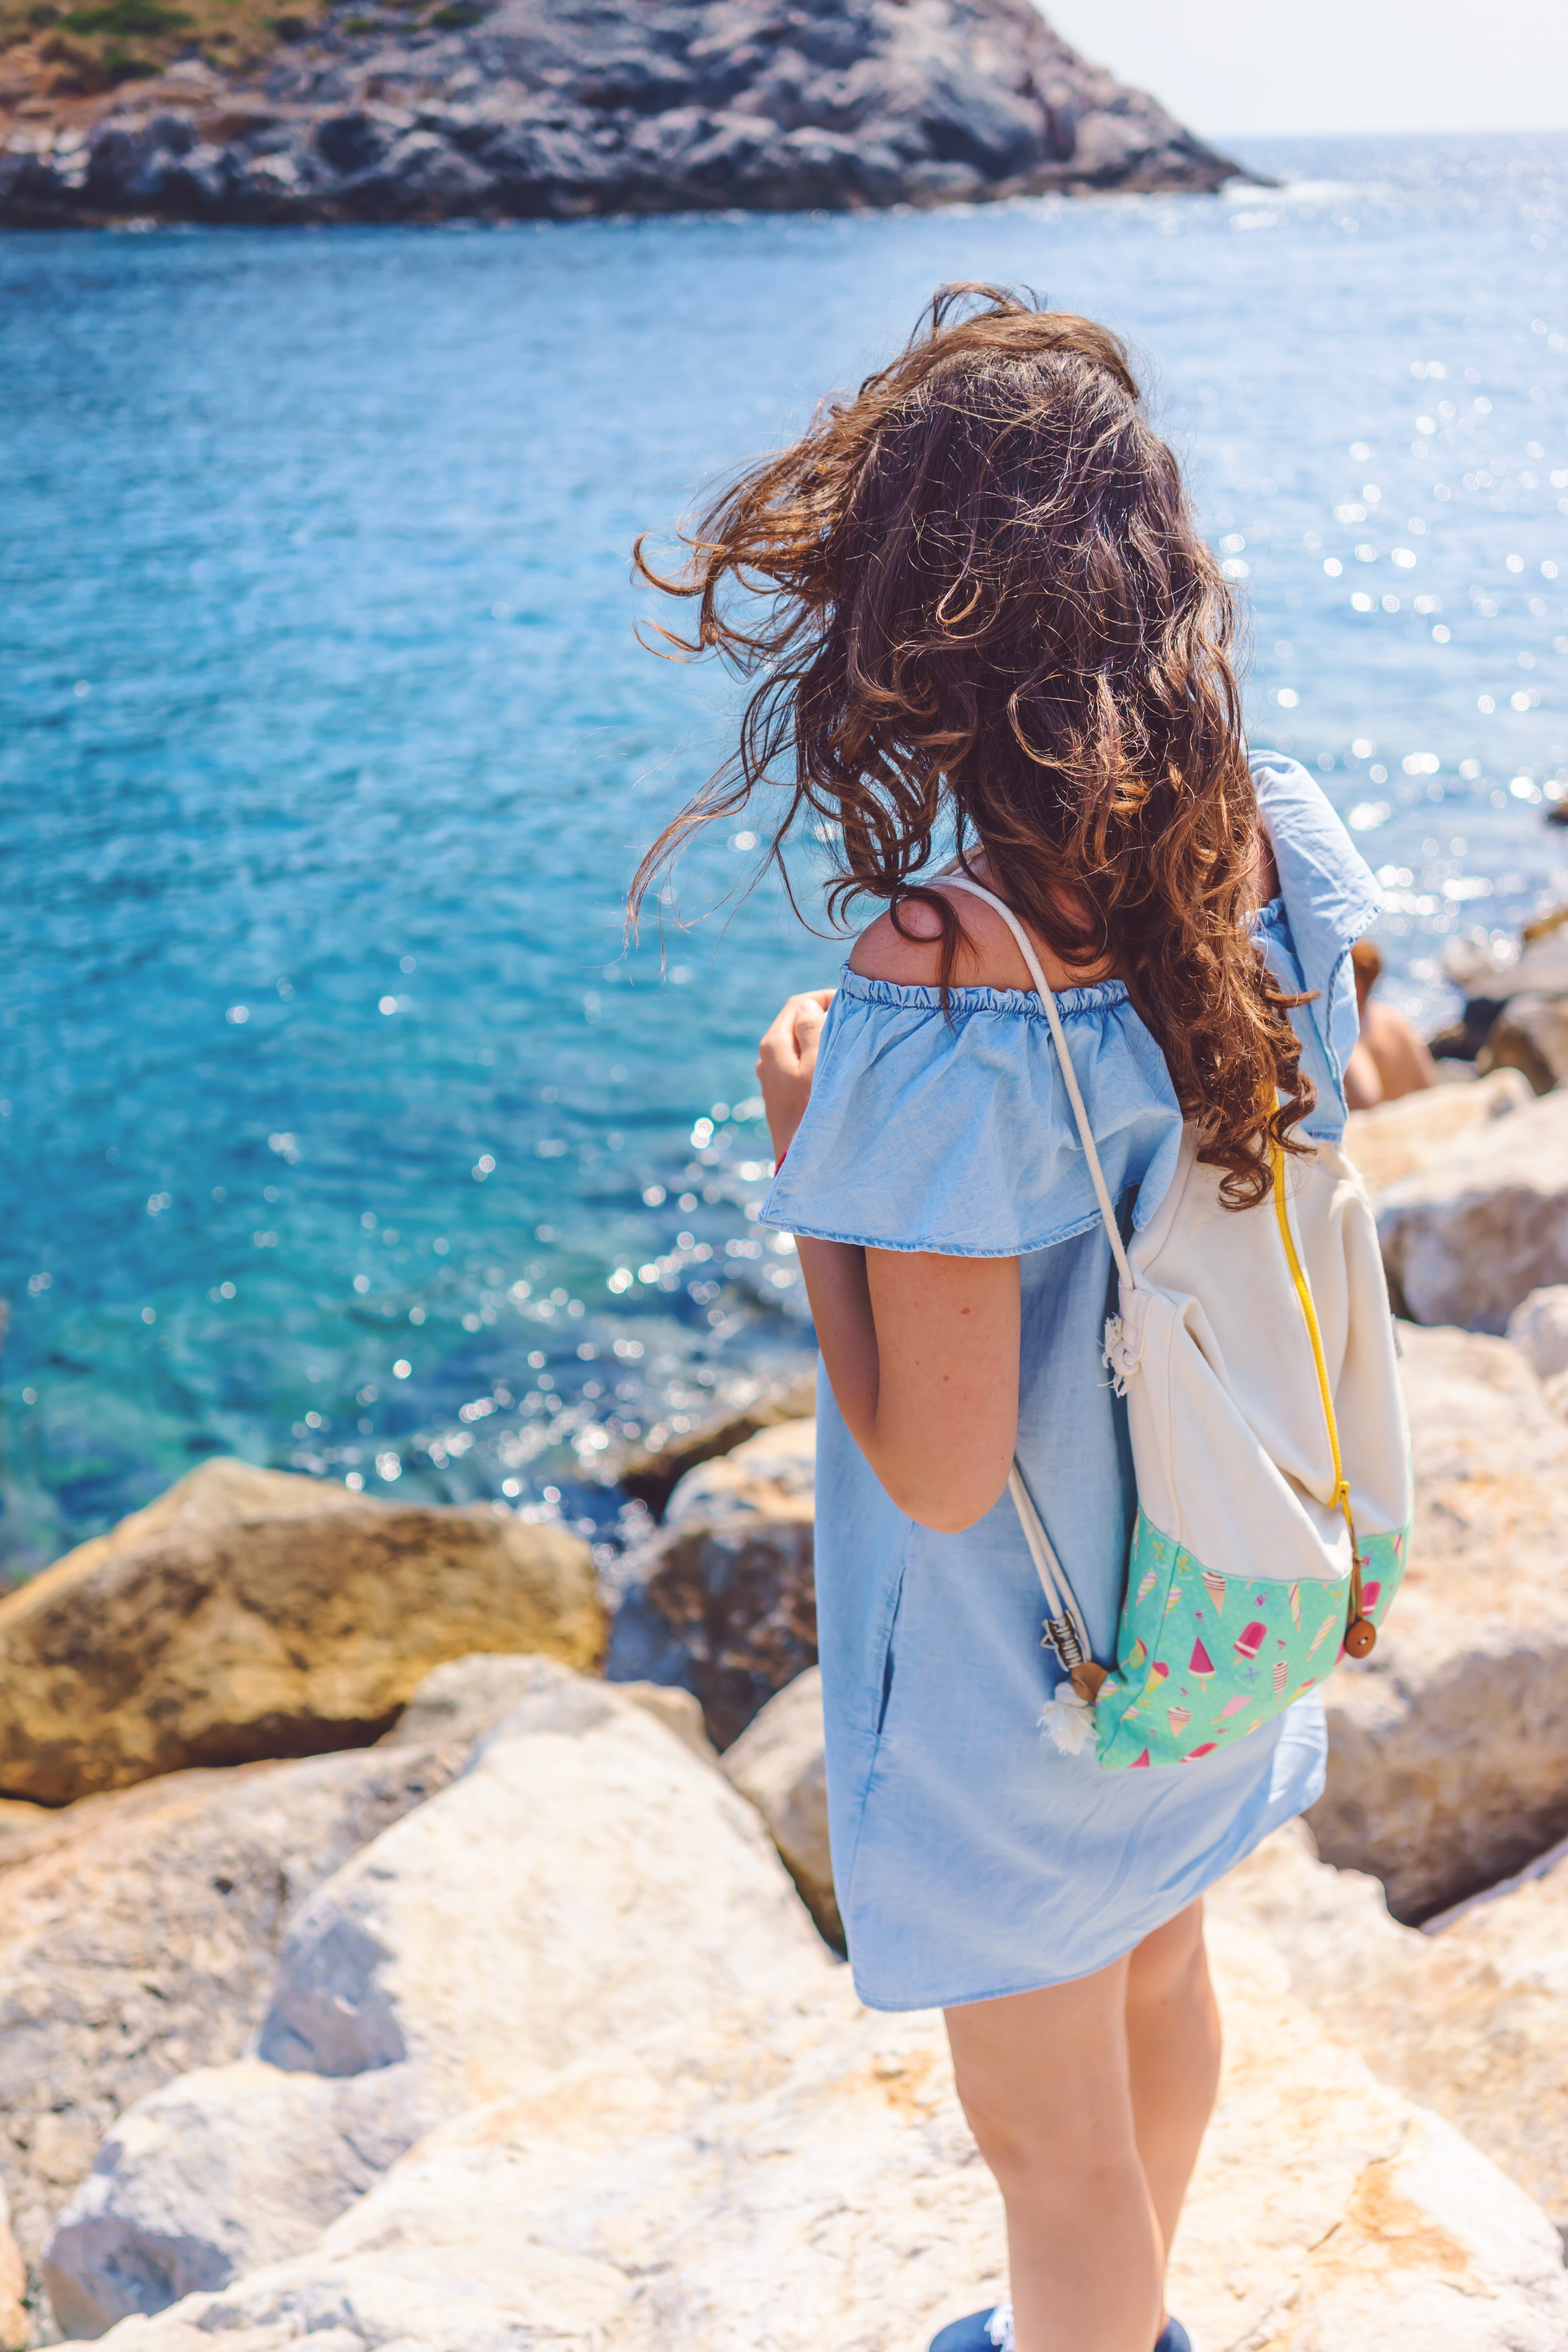 Woman with a drawstring bag standing on a rocky sea shore